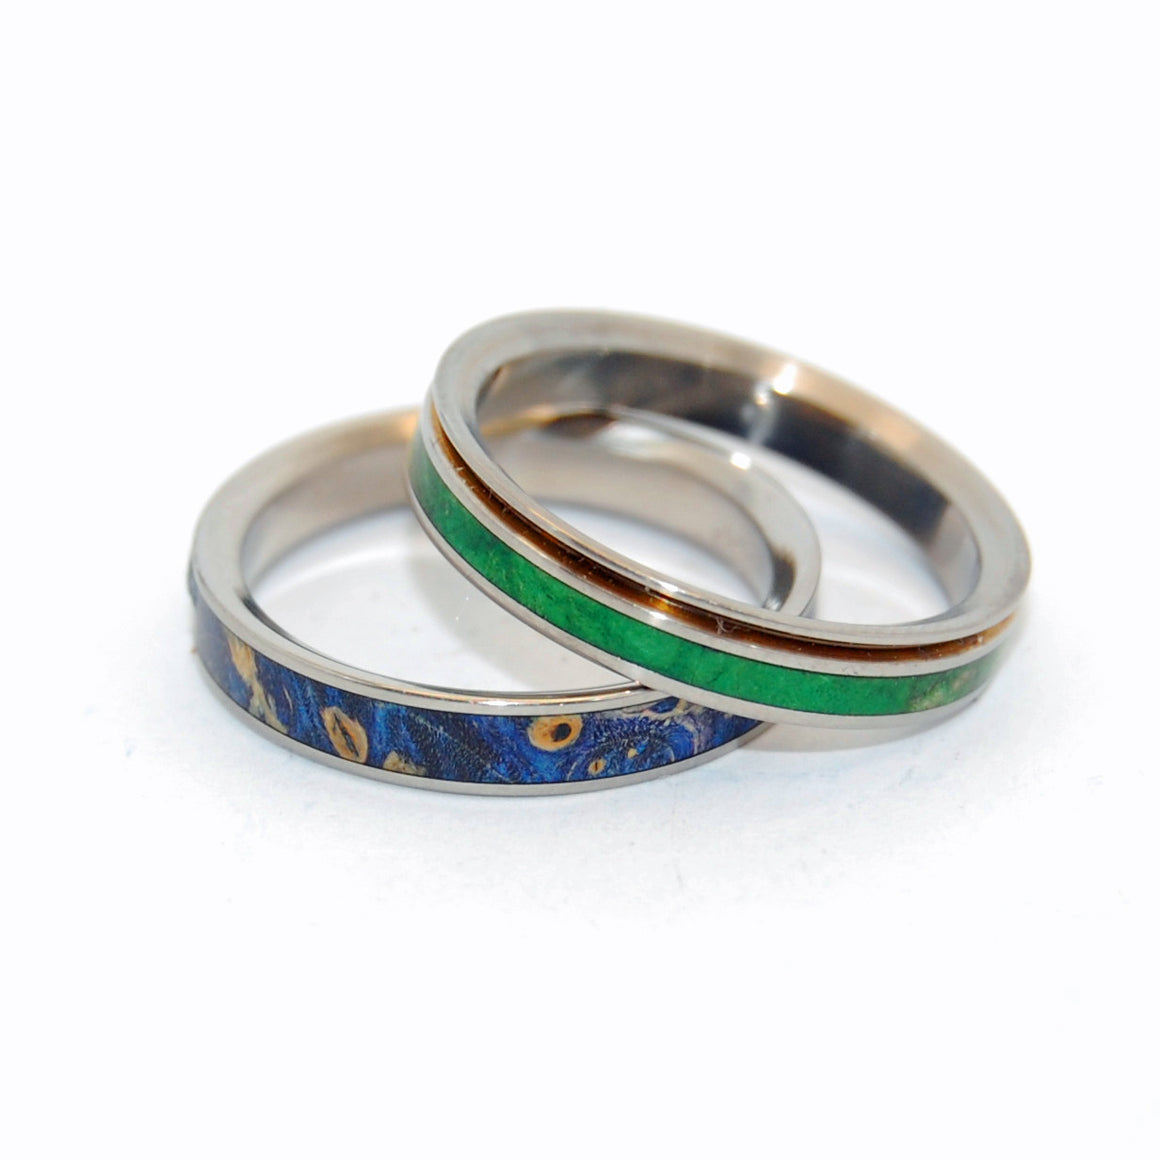 STARS & MOSS | Green Box Elder Wood & Blue Box Elder Wood - Titanium Wedding Rings - Unique Wedding Rings - Minter and Richter Designs